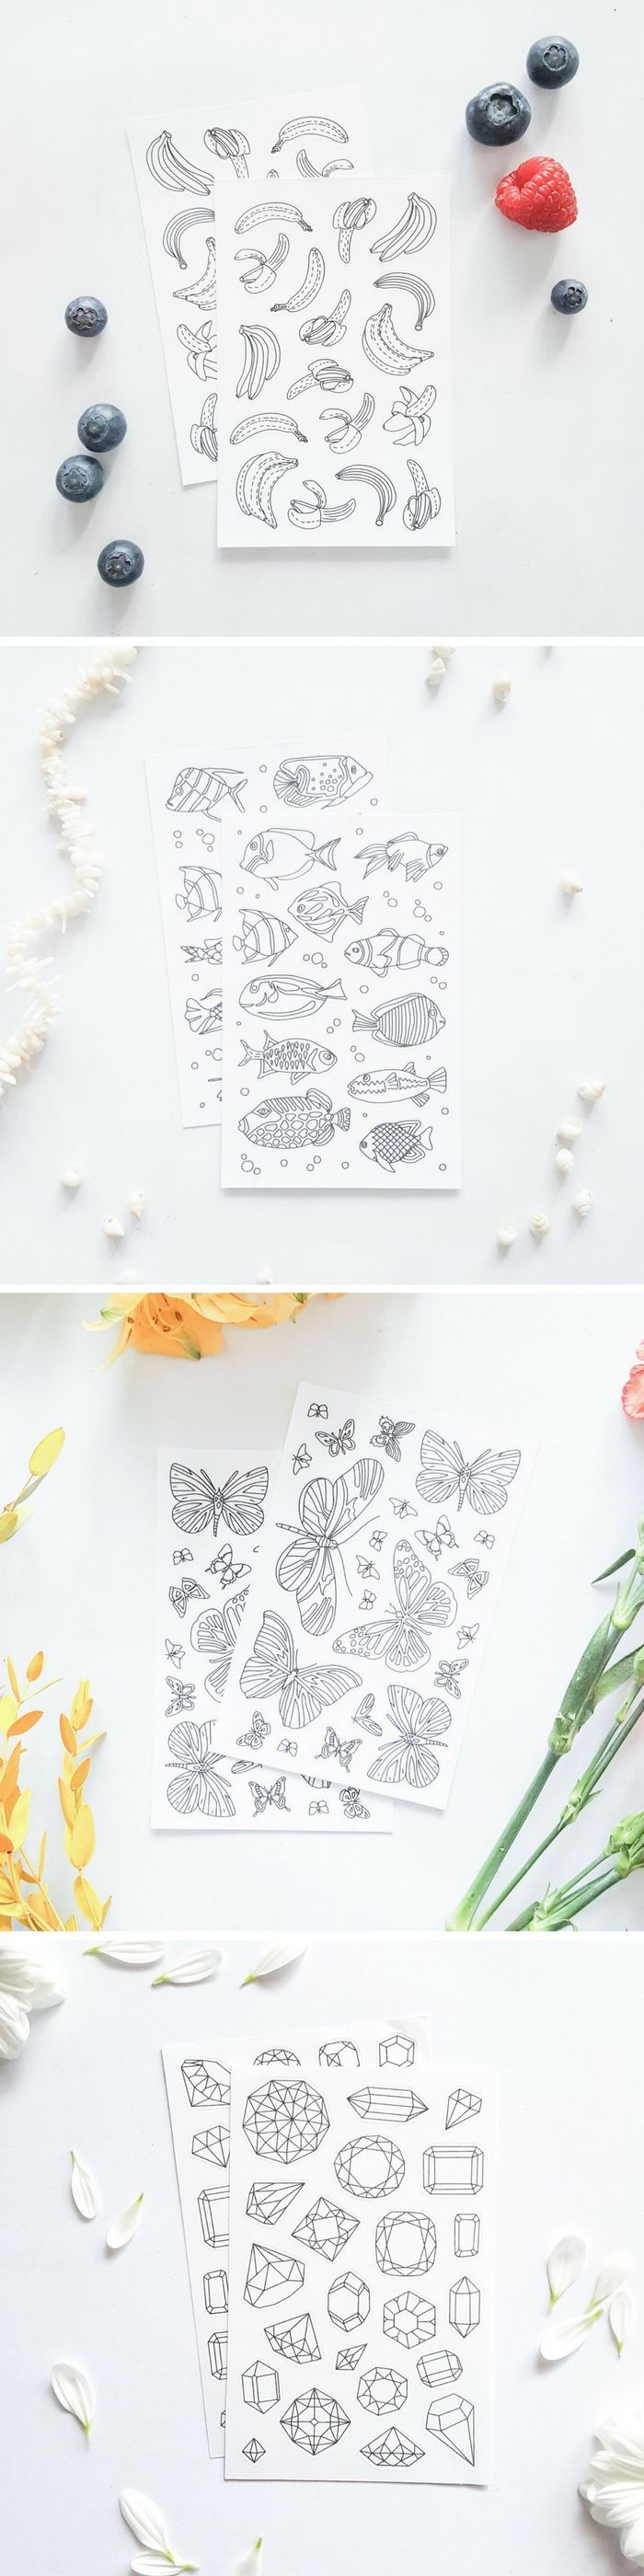 How awesome are these adult coloring stickers? Great supply for paper crafts or decorative gift wrapping! :)